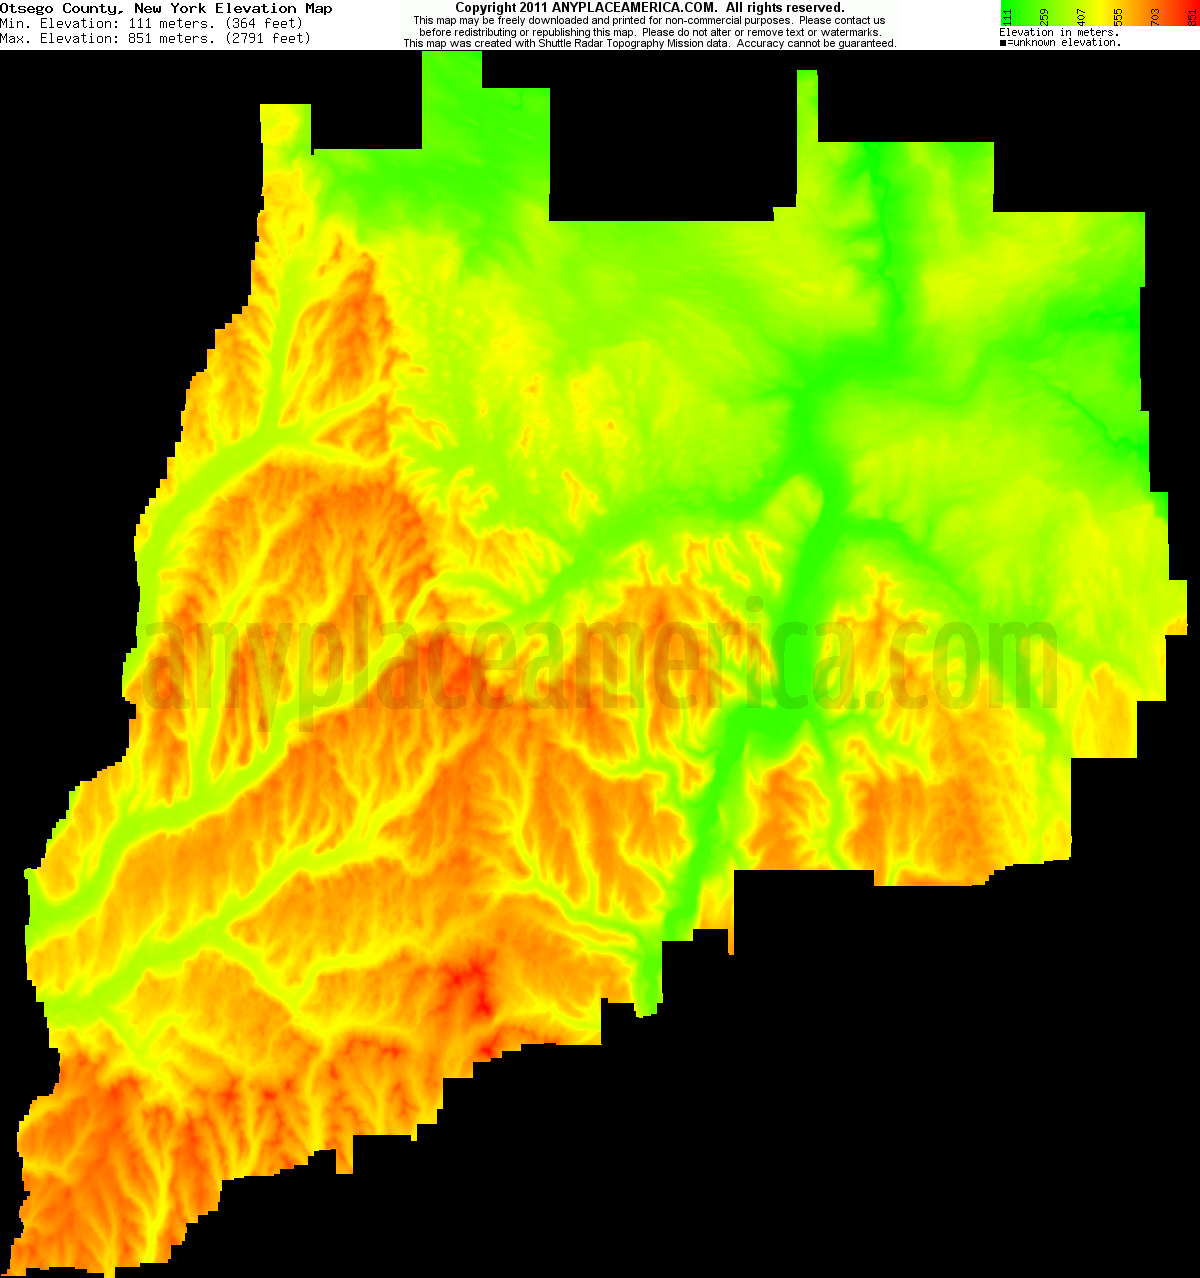 New york otsego county cherry valley - Download Otsego County Elevation Map